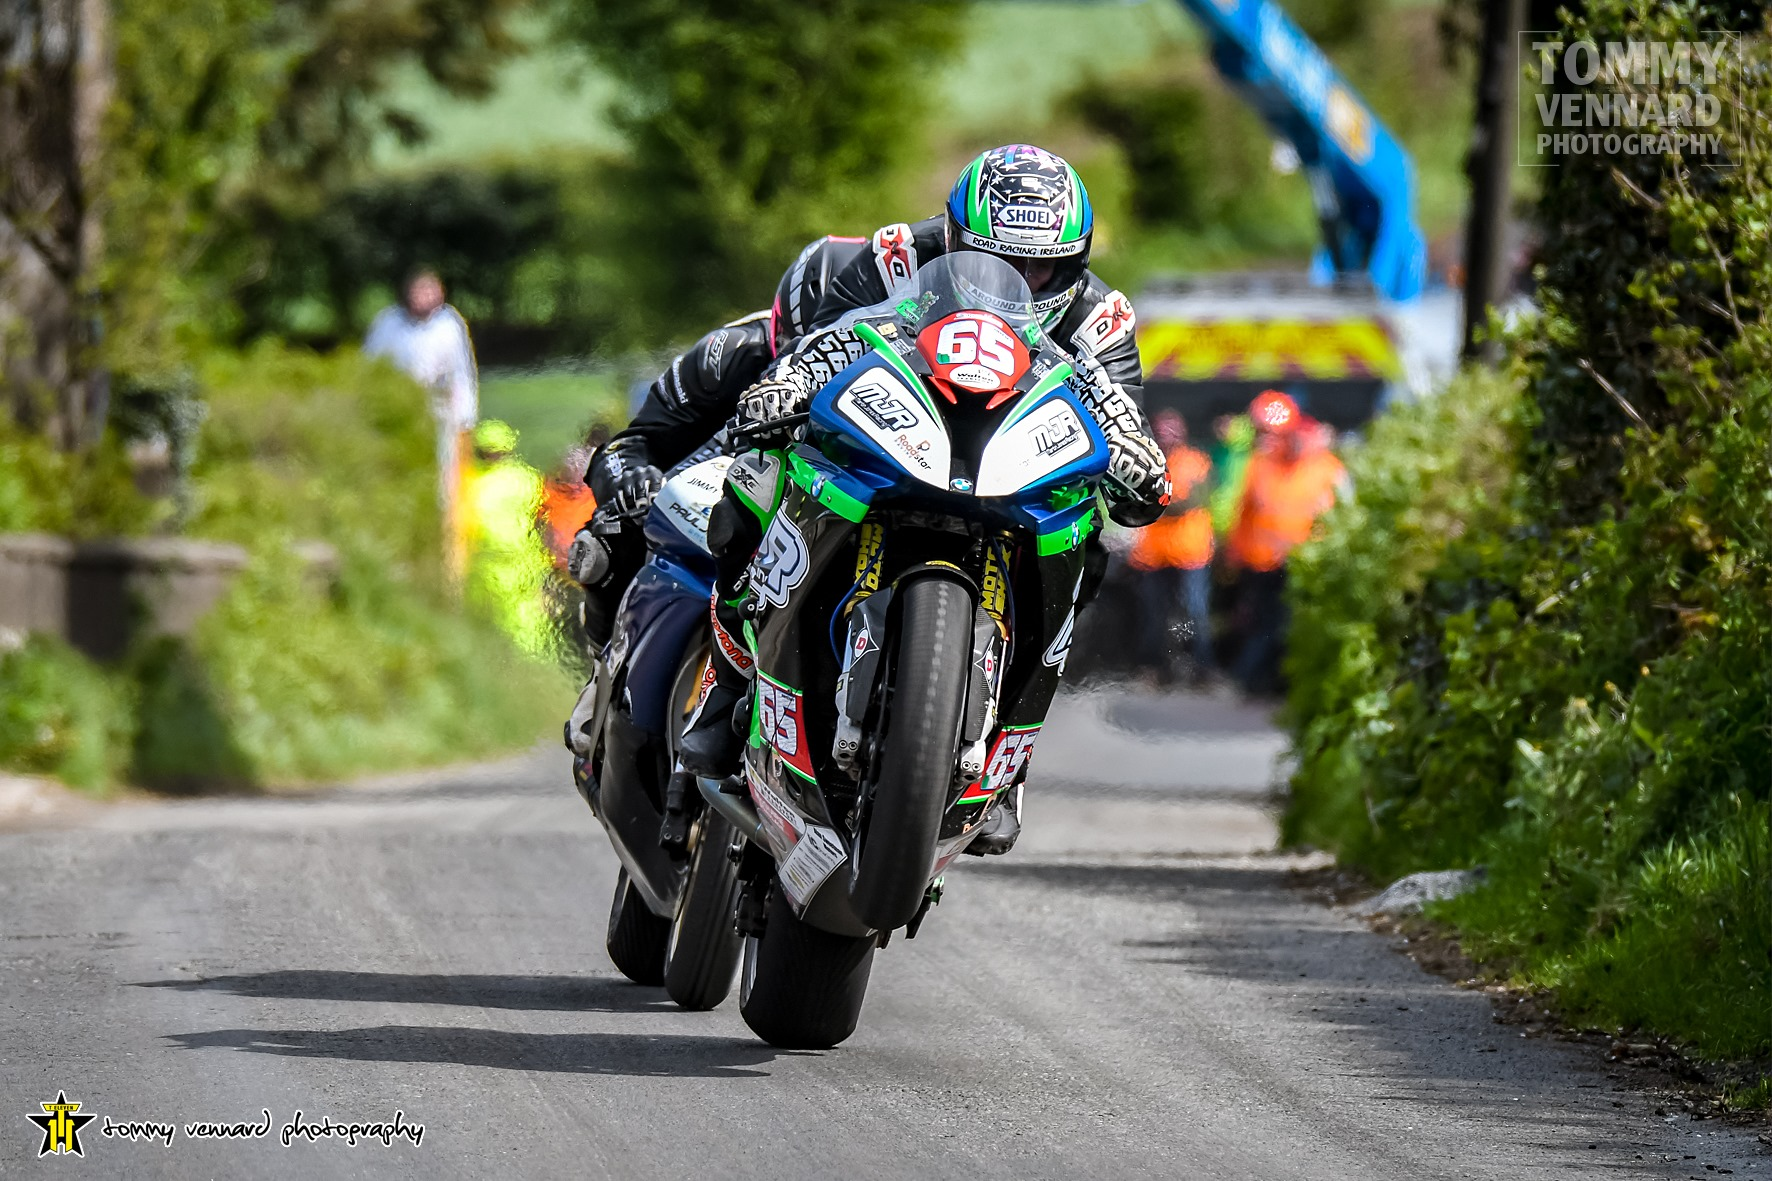 KDM Hire Cookstown 100 Latest: Excitement Building For Irish Road Racing Return